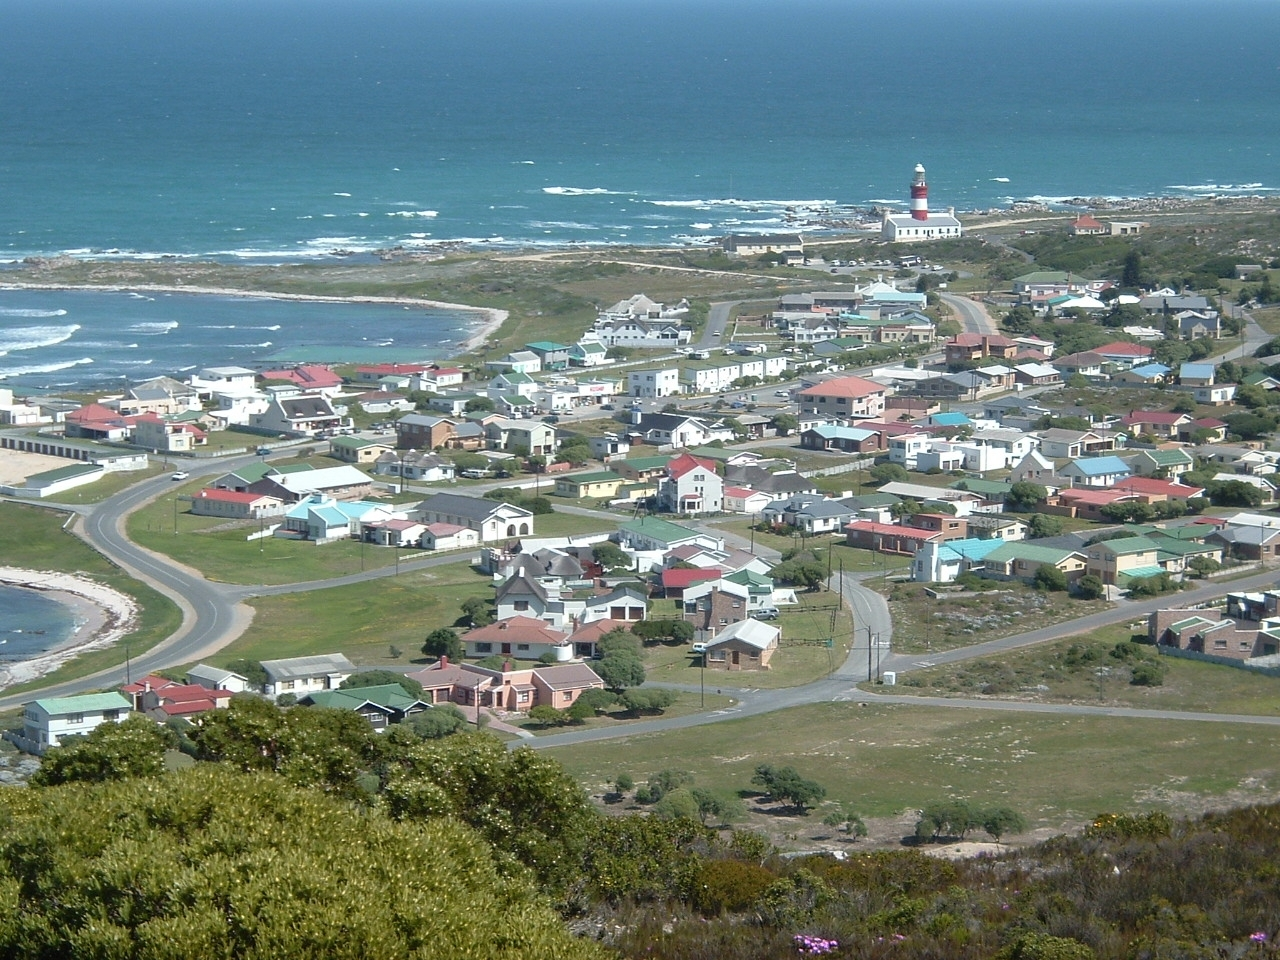 Julia Roberts Making Secret Eyes Husband 35126948 in addition Annual Potjie  petition also A Cape Town Wedding Genevieve And Kelly as well Njlighthouses in addition Ibiza. on cape may house